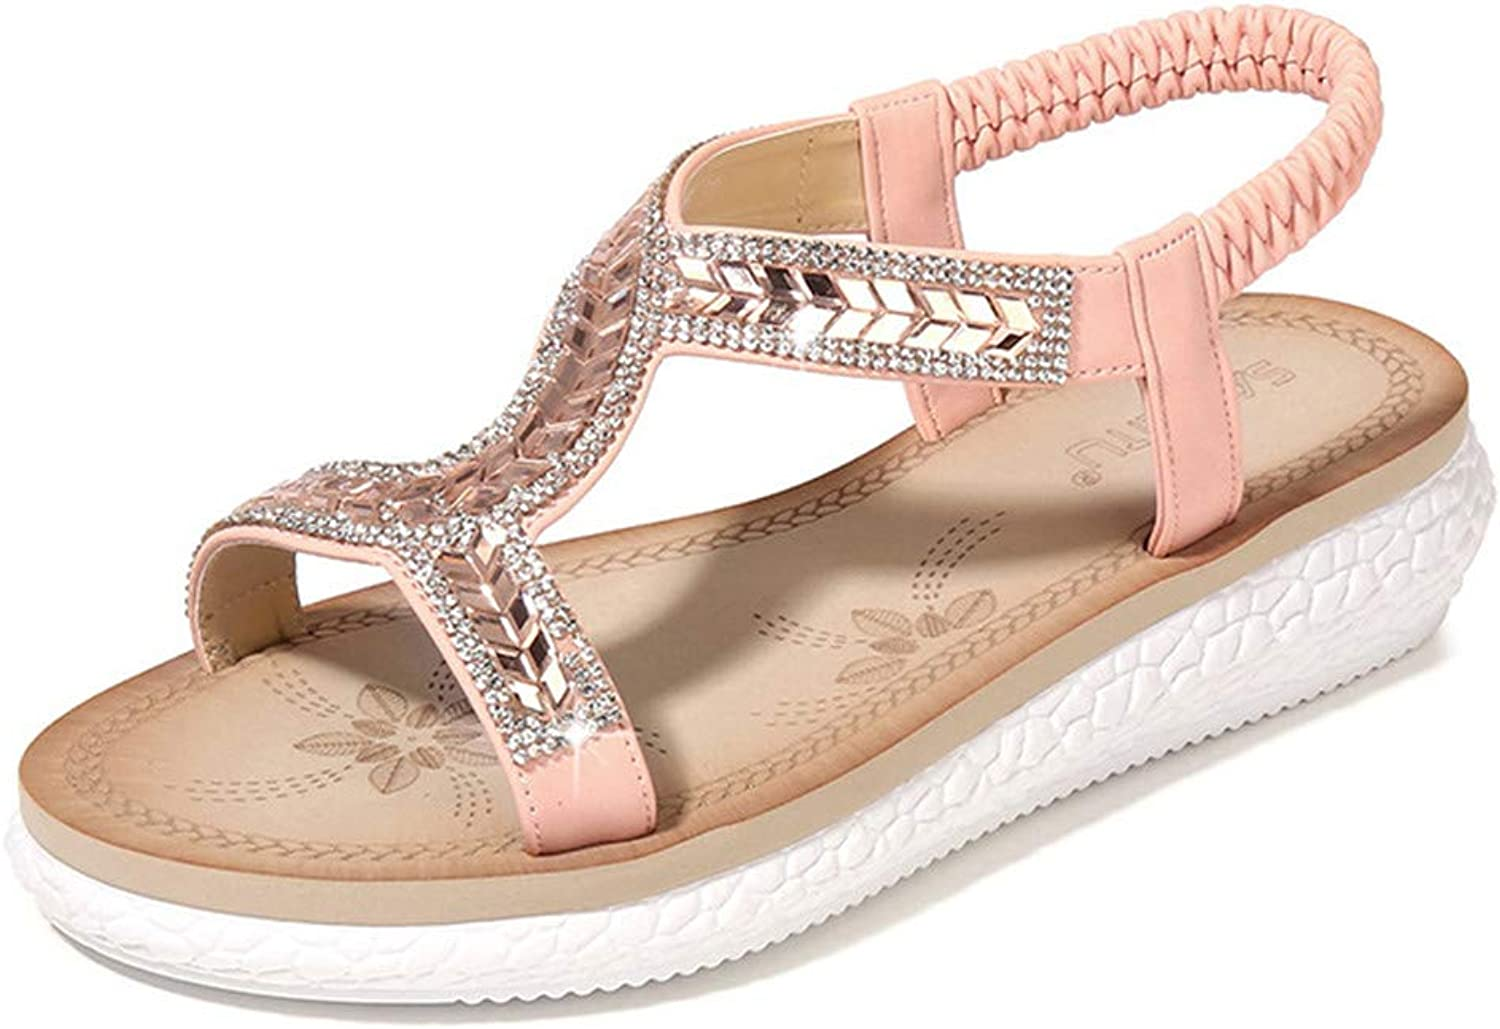 Women Roman Style Sandals Gladiator Ankle Strap Espadrilles Side Summer Flats shoes